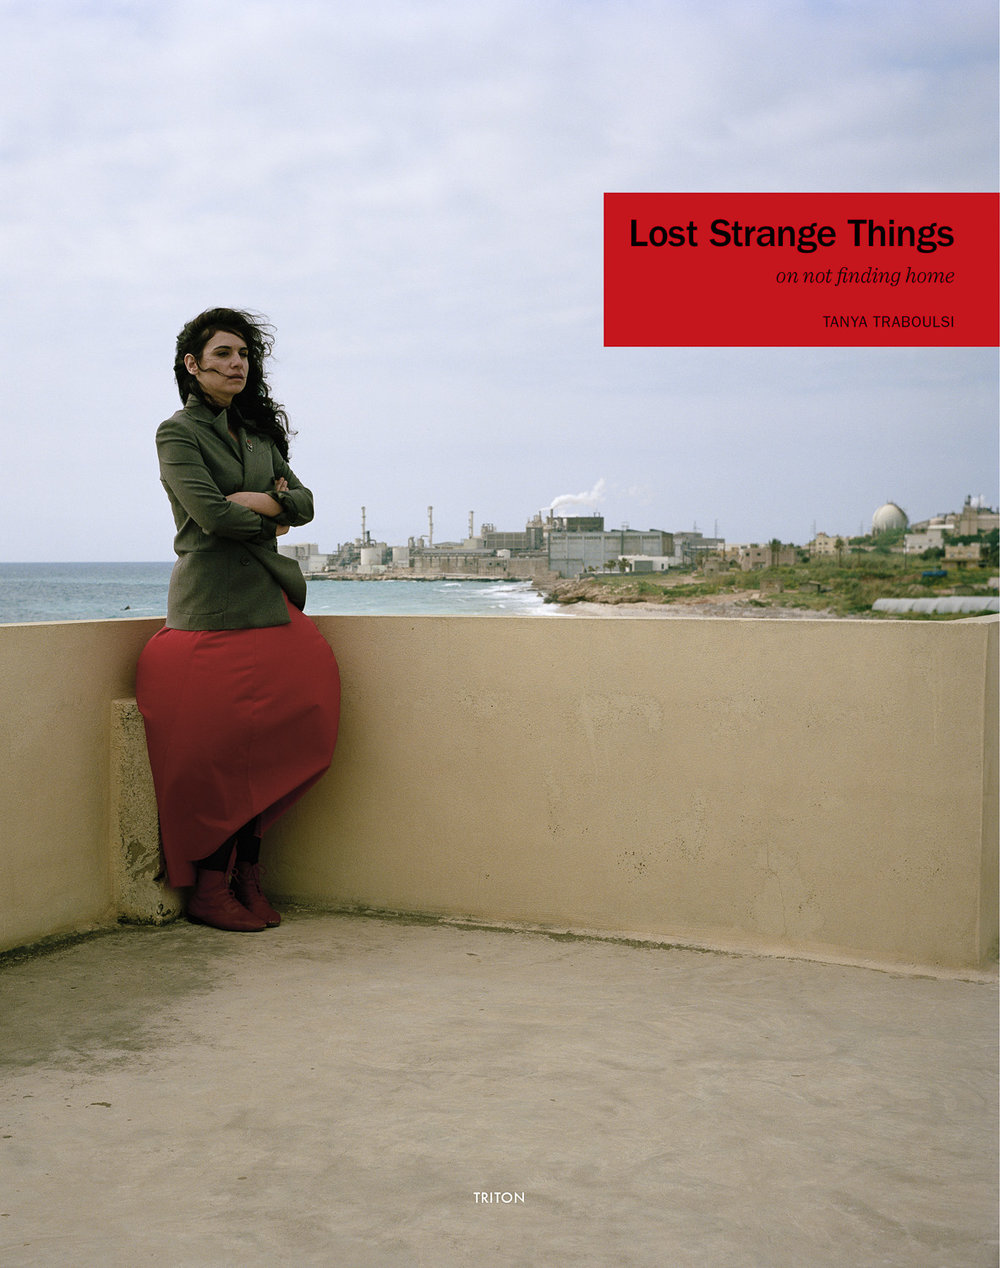 Lost Strange Things: On not finding home  Book   Lost Strange Things: On not finding home  is a monograph with images from the photographic series of the same title. The book assembles 116 photographs, many family photos and documents culled from the artist's personal collection and texts by Rayya Badran, Bariaa Mourad and Najla Said.  208 pages, 20.5 x 26cm CMYK (full color) recto verso Exposed binding 300g Fabriano Offset soft cover 140g Fabriano Offset inside pages Published by  Triton  in 2014 Designed by  Studio Safar  Edition of 500 Artist Edition of 10 + III AP  ISBN 978-84-943401-8-5  Permanent collections: Albertina, Vienna University of Applied Arts, Vienna Galleria Nazionale d'Arte Moderna, Rome The National Museum of XXI Century Arts, Rome